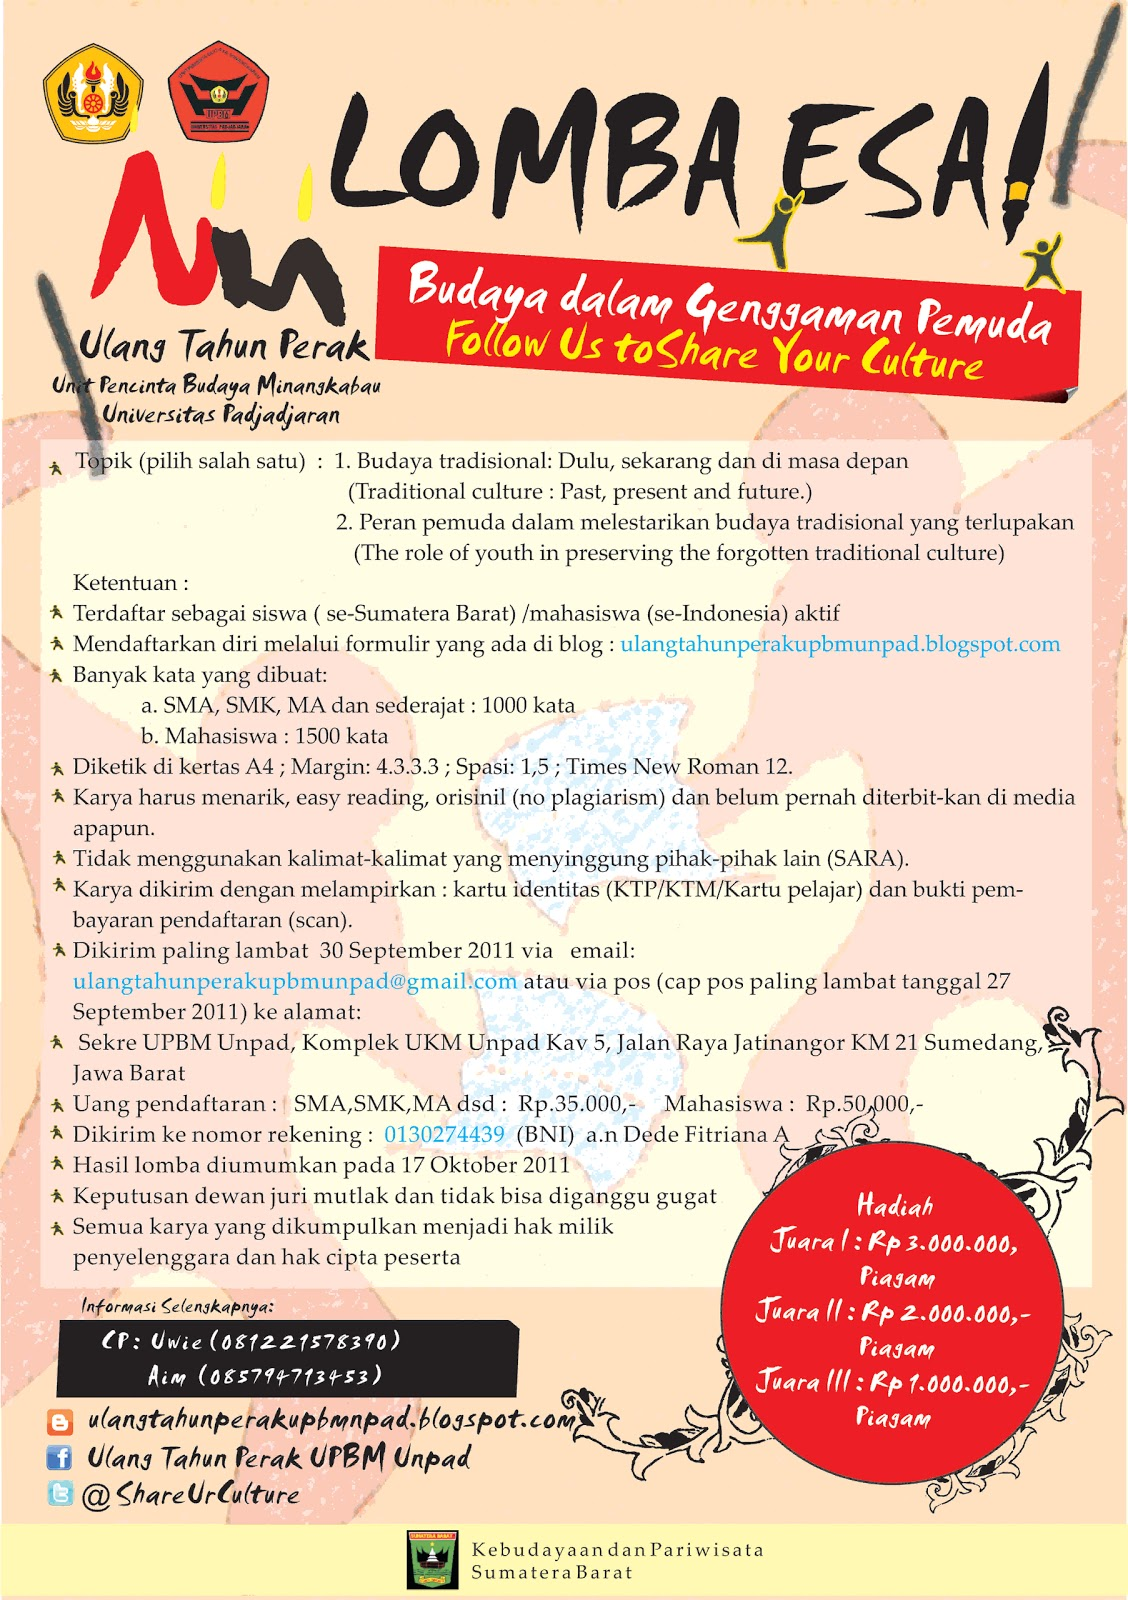 lomba essay 2009 The rookies was established in 2009 with the goal of info lomba mei 2018 | lomba menulis essay berikut ini diselenggarakan oleh kppi dan bakopaman pada bulan mei.